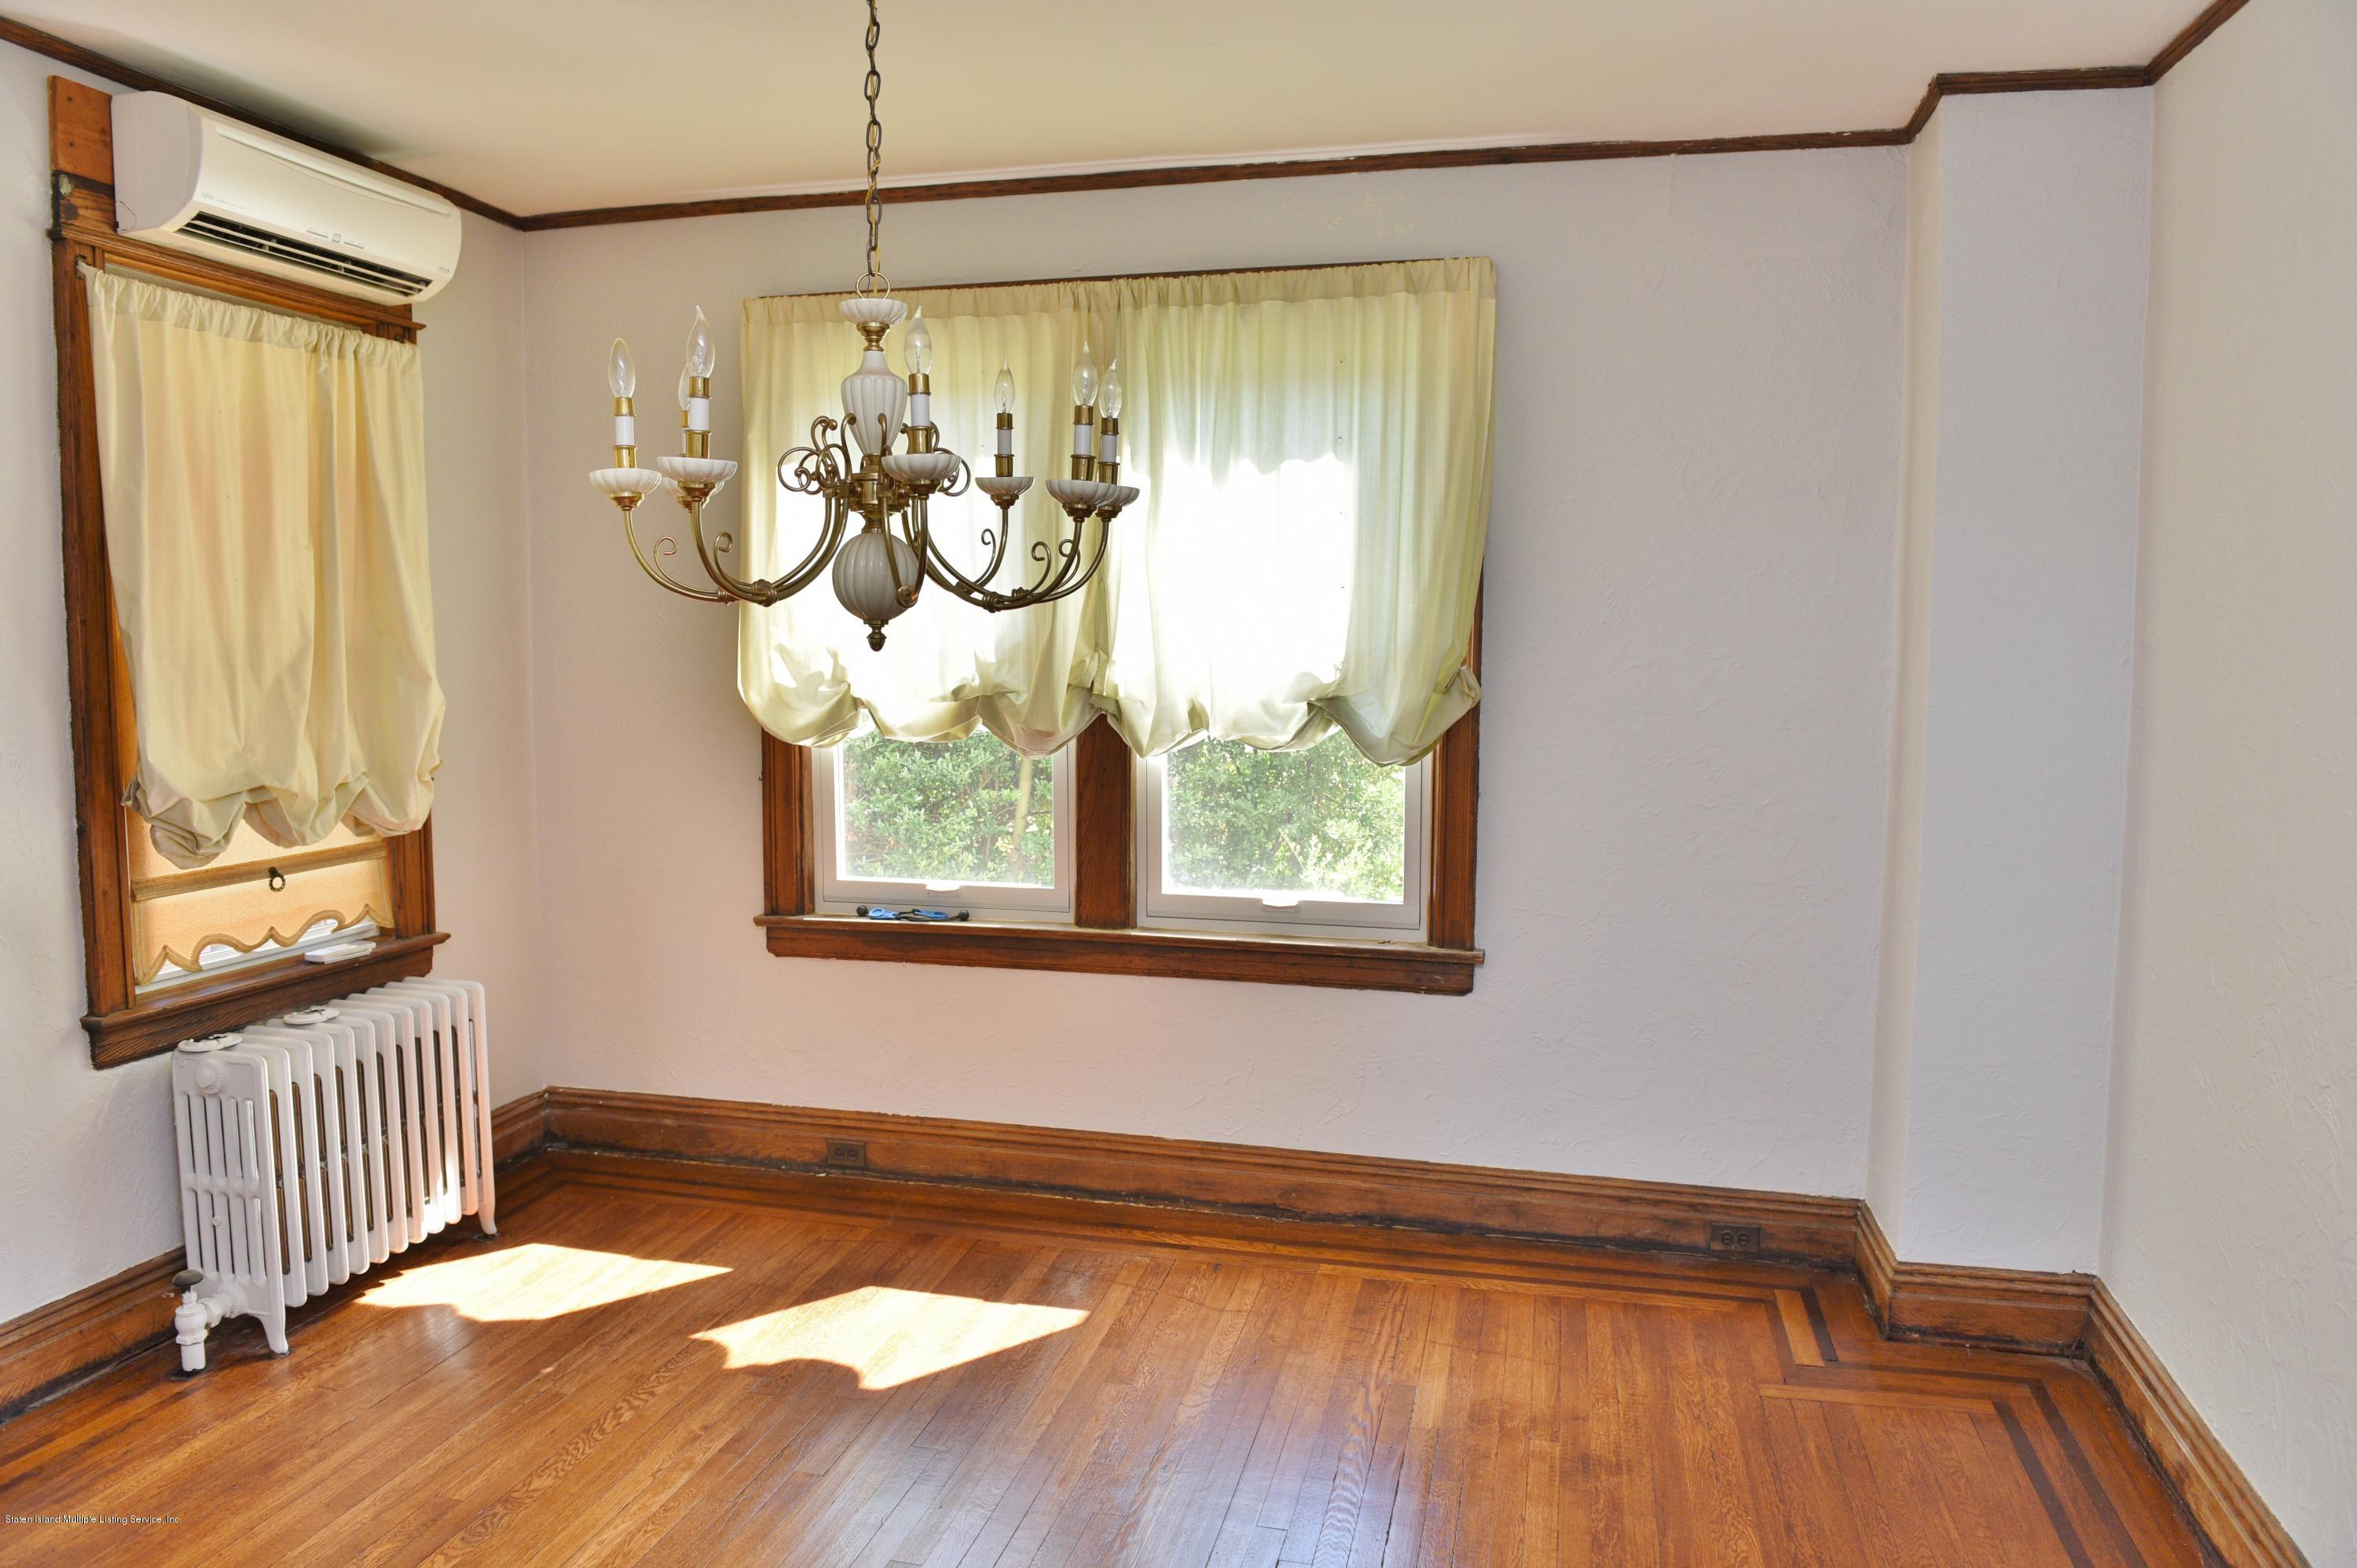 Single Family - Detached 55 Fort Hill Circle  Staten Island, NY 10301, MLS-1131735-25